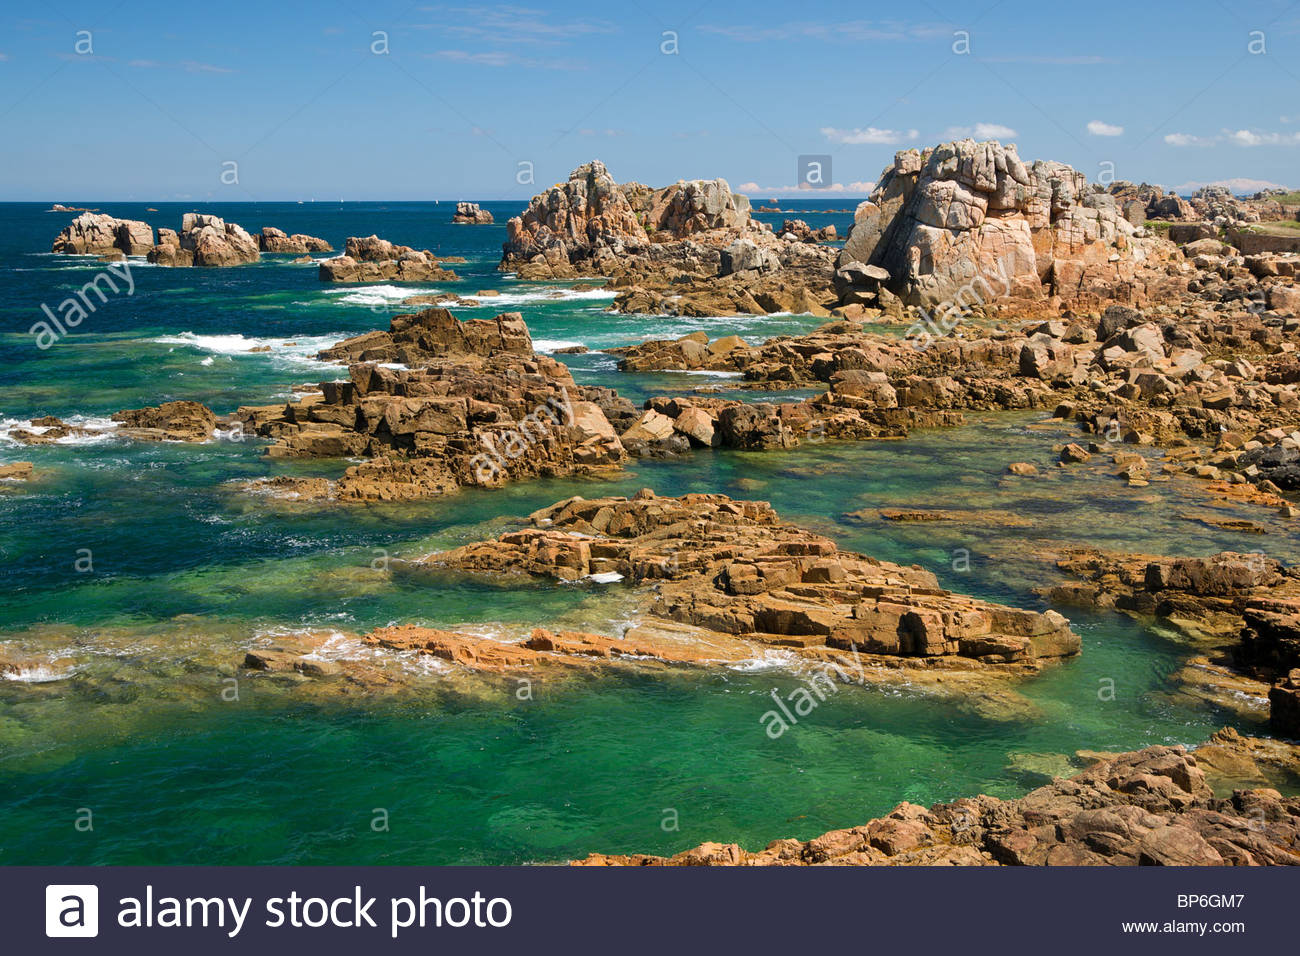 Pink granite rocks and clear water at Plougrescant (near Perros Guirec) - Brittany - France - Stock Image